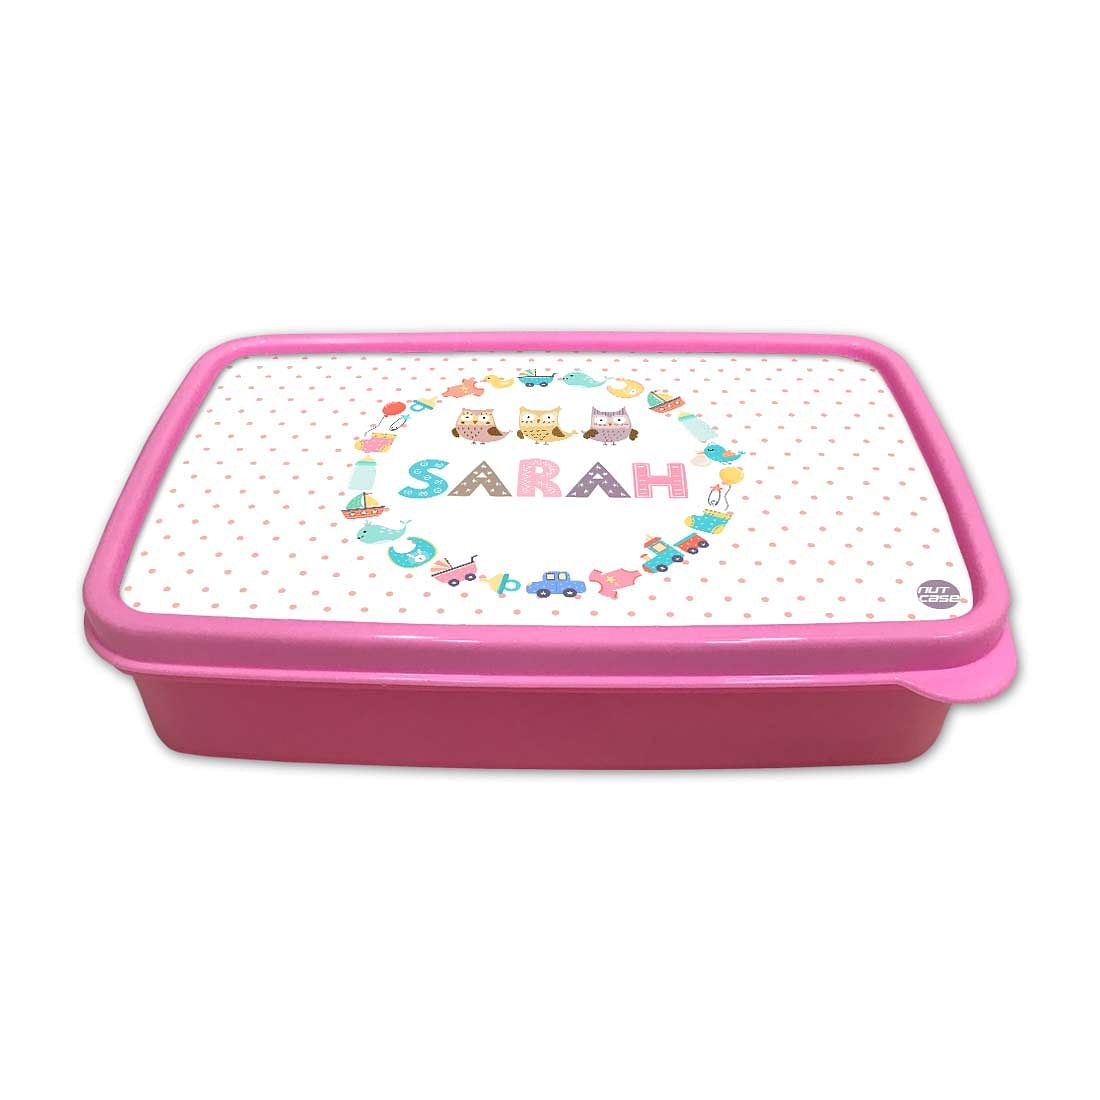 Personalized Snack Box for Kids Plastic Lunch Box for Girls -Kids Toys and Owls